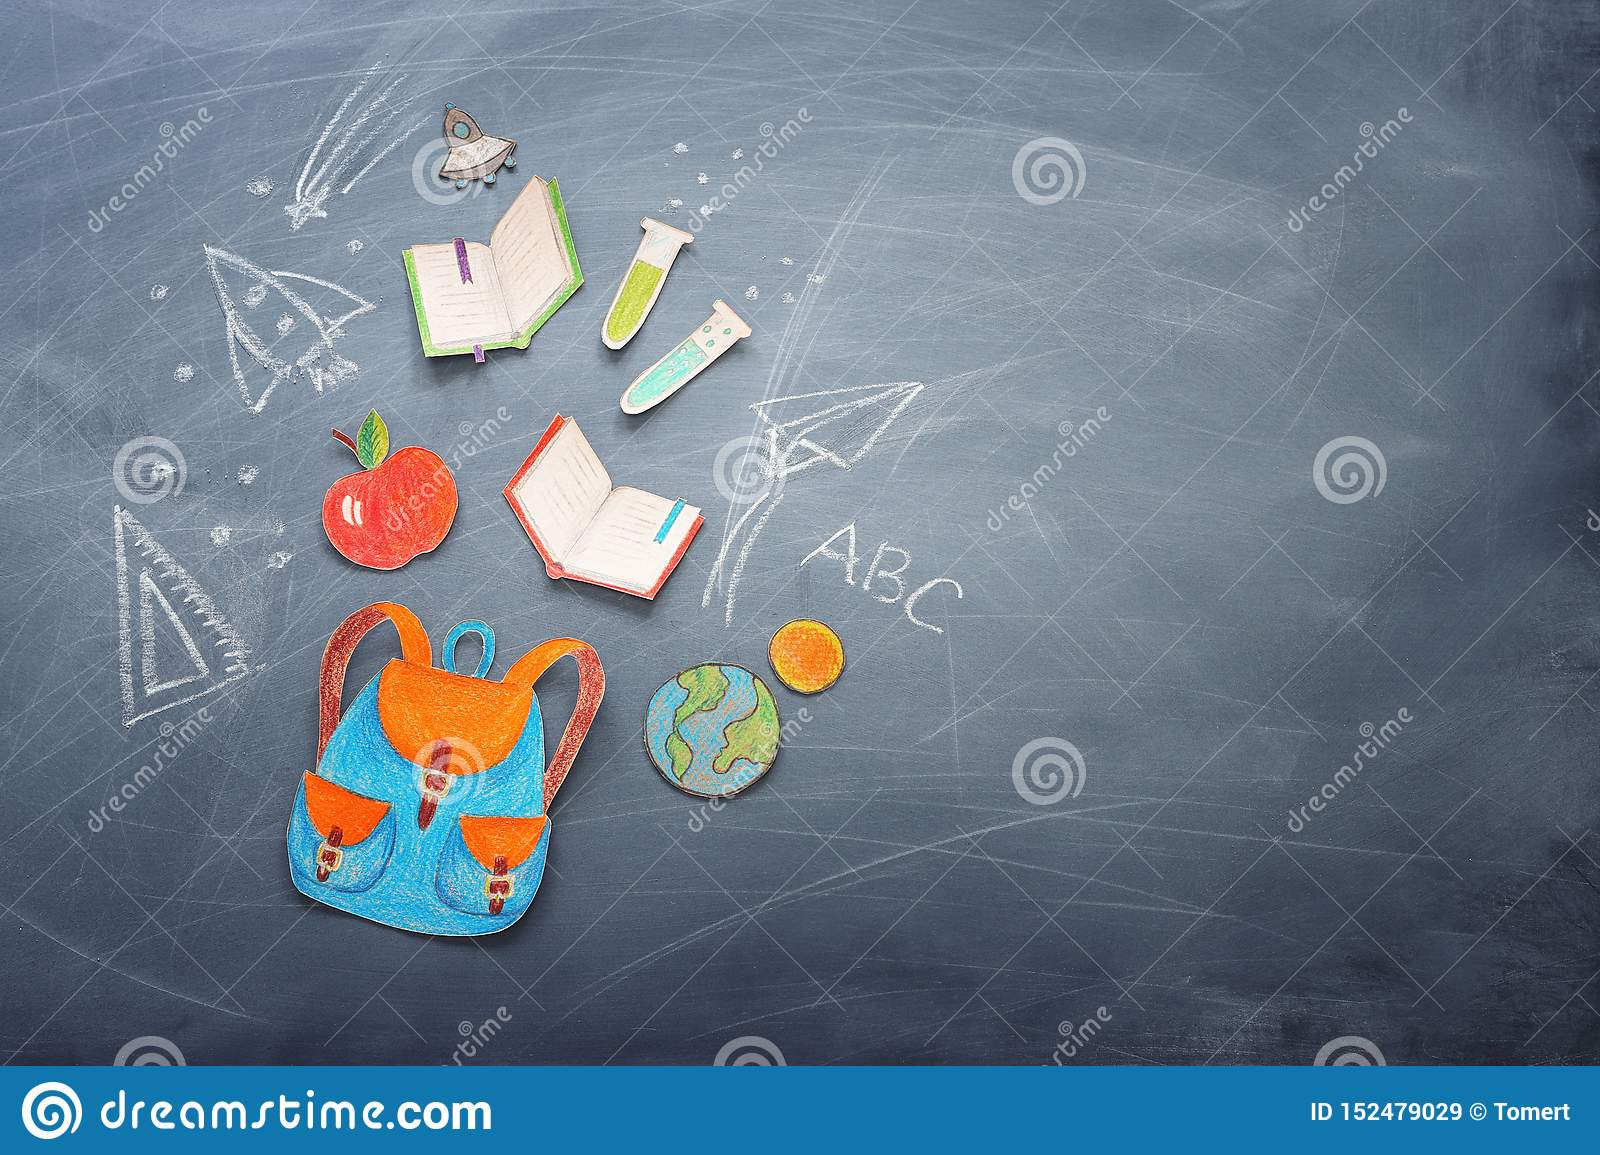 Education and back to school concept. shapes cut from paper and painted of backpack, books, chemistry flask and apple over